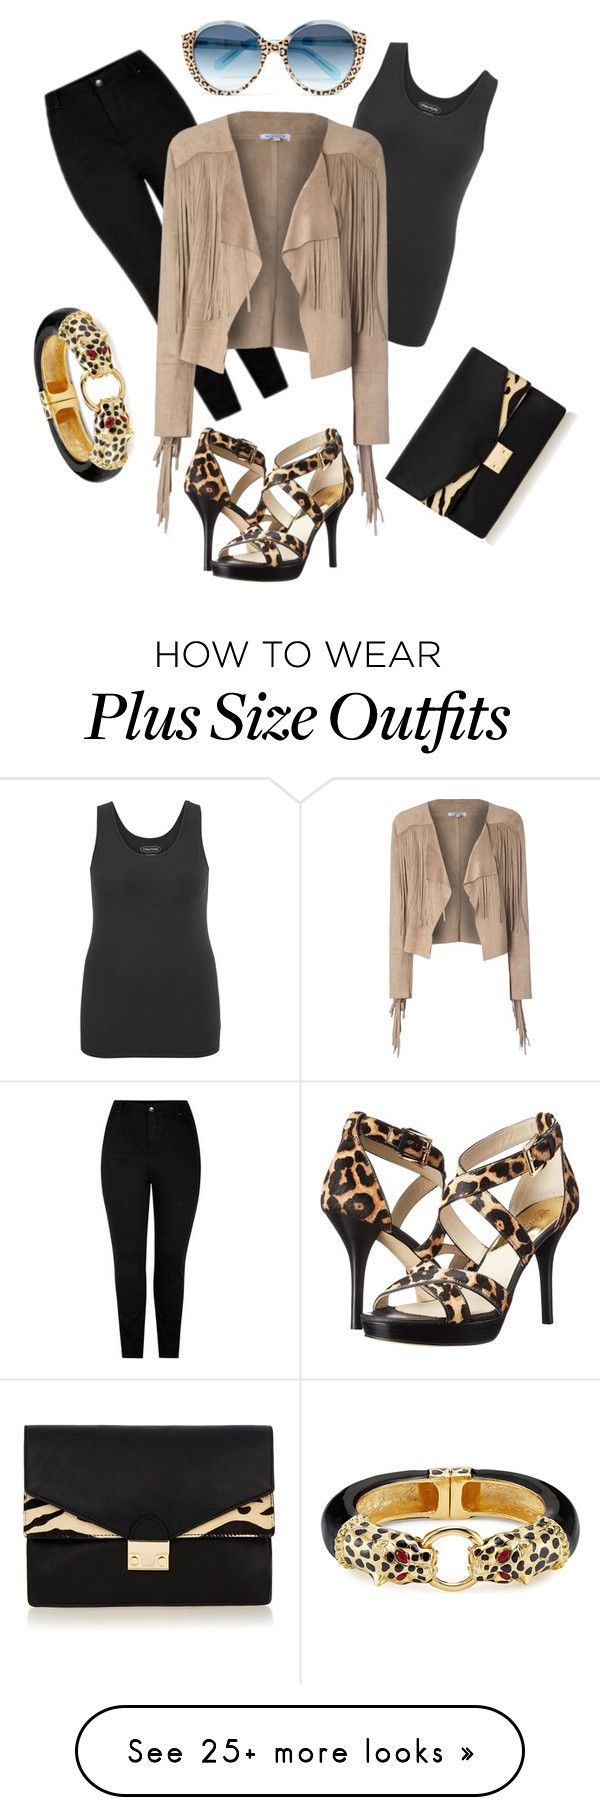 """Animal Print Plus Size Outfit"" by sylwia-z on Polyvore featuring Cutler and Gross, MICHAEL Michael Kors, New Look, maurices, Glamorous, Loeffler Randall and Kenneth Jay Lane"